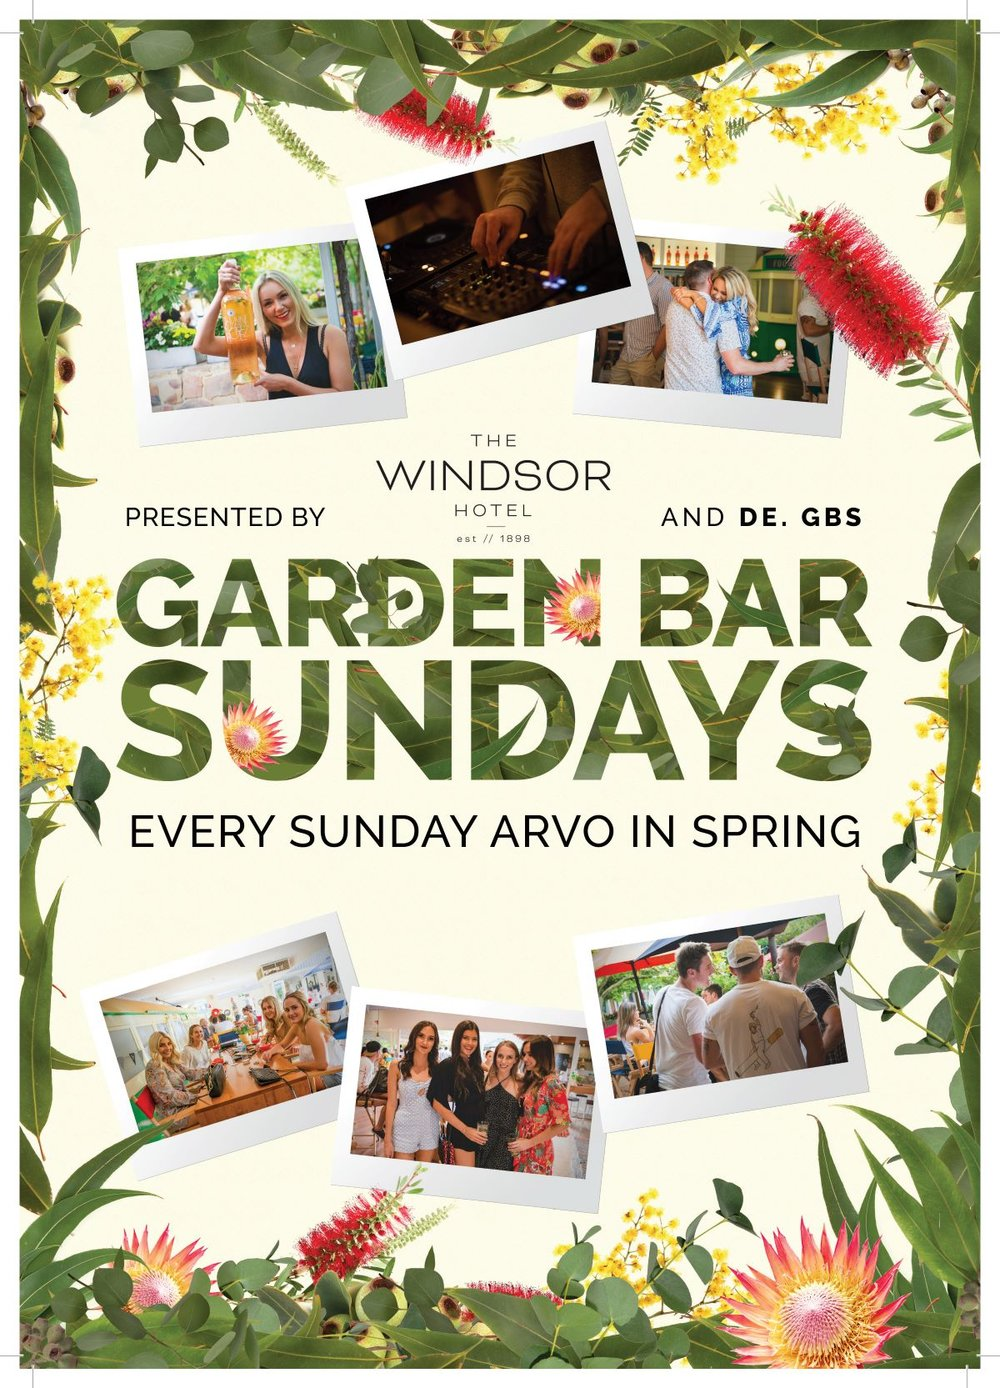 GARDEN BAR SUNDAYS   The best Sunday Session south of the river is here, in the Garden Bar every weekend in Spring. Including $8 Cocktails, $15 Grazing Boards and live DJ's spinning house and nu disco all afternoon long!